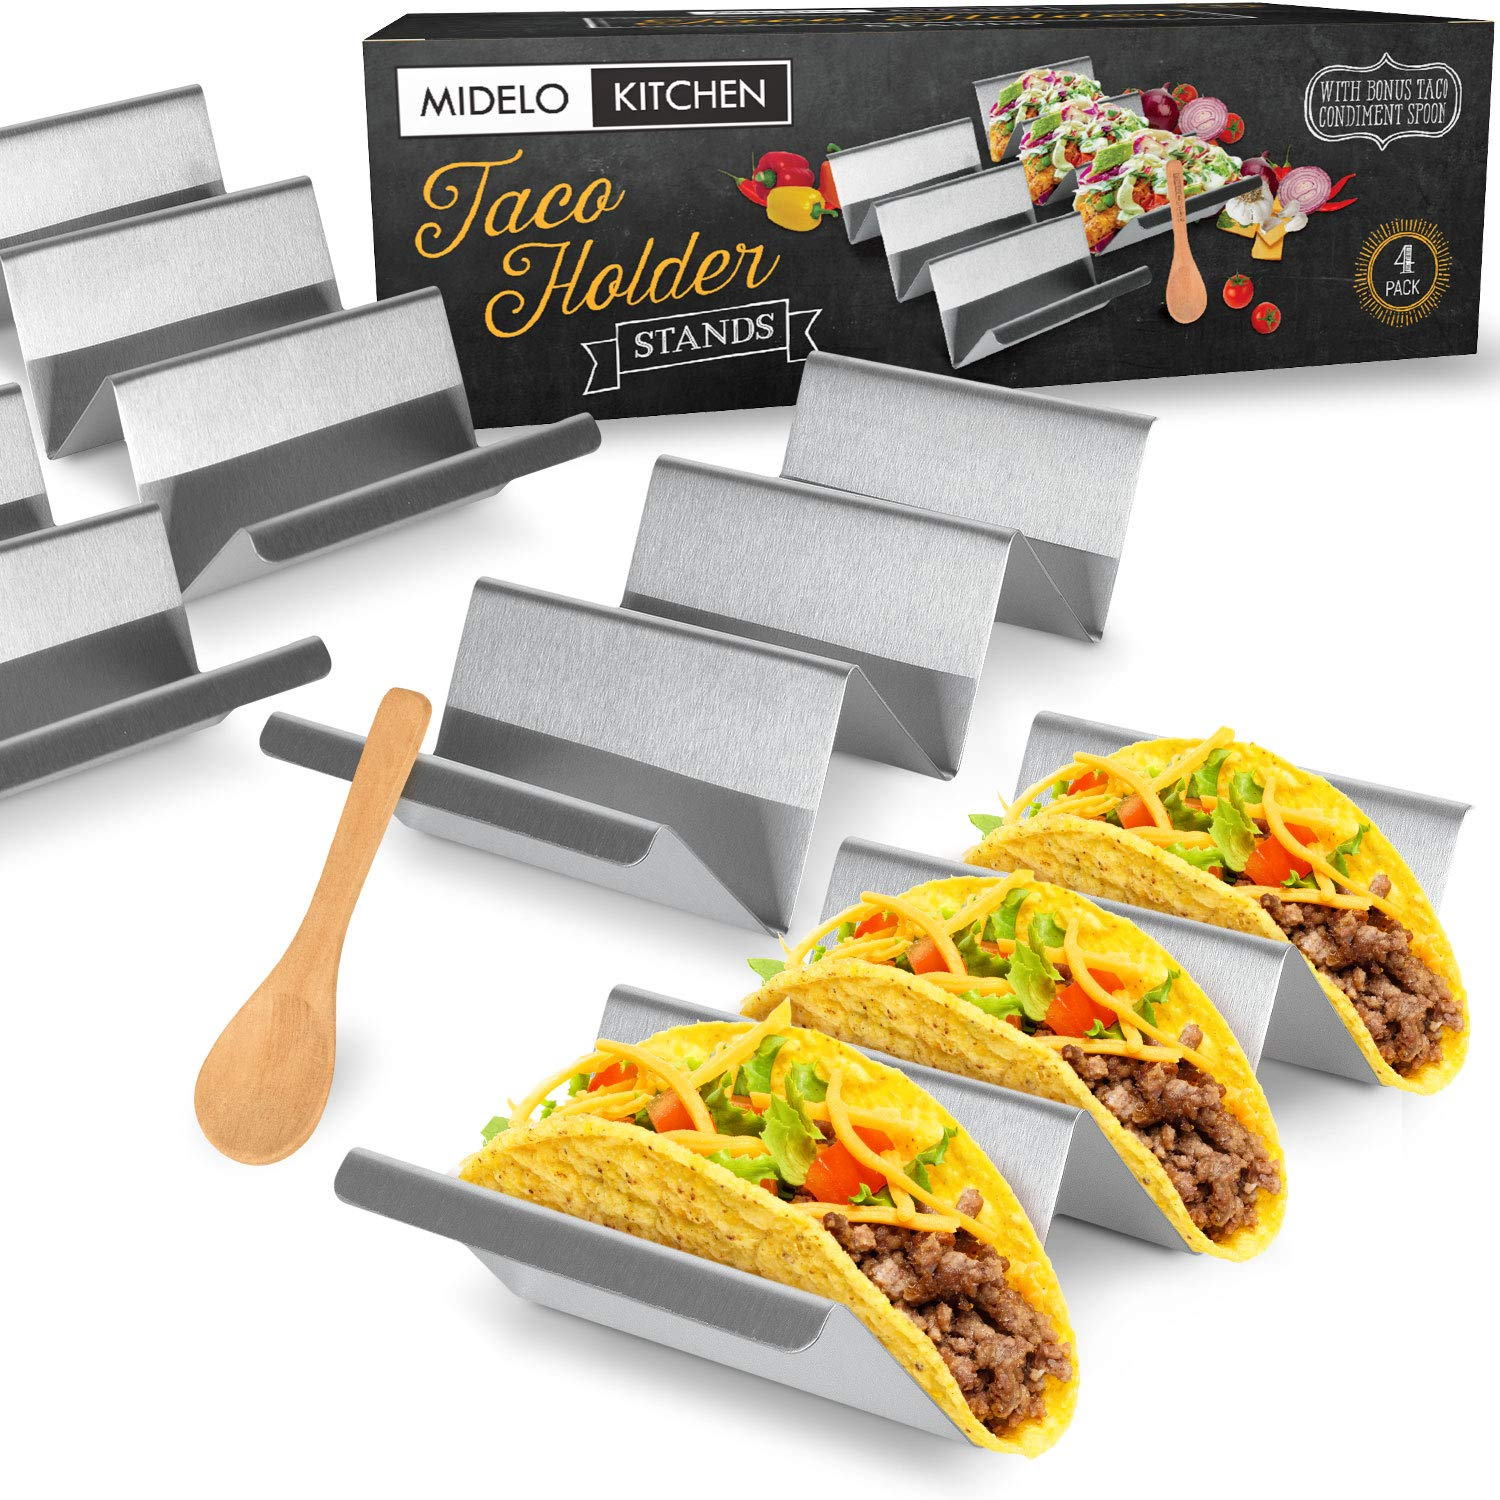 Taco Holder Stands (4 Pack) w/FREE Serving Spoon - Dishwasher & Oven Safe Taco Racks - Made From Durable Food-Grade Stainless Steel - Easily Fill Your Tacos & Serve Them With The Built-In Handles